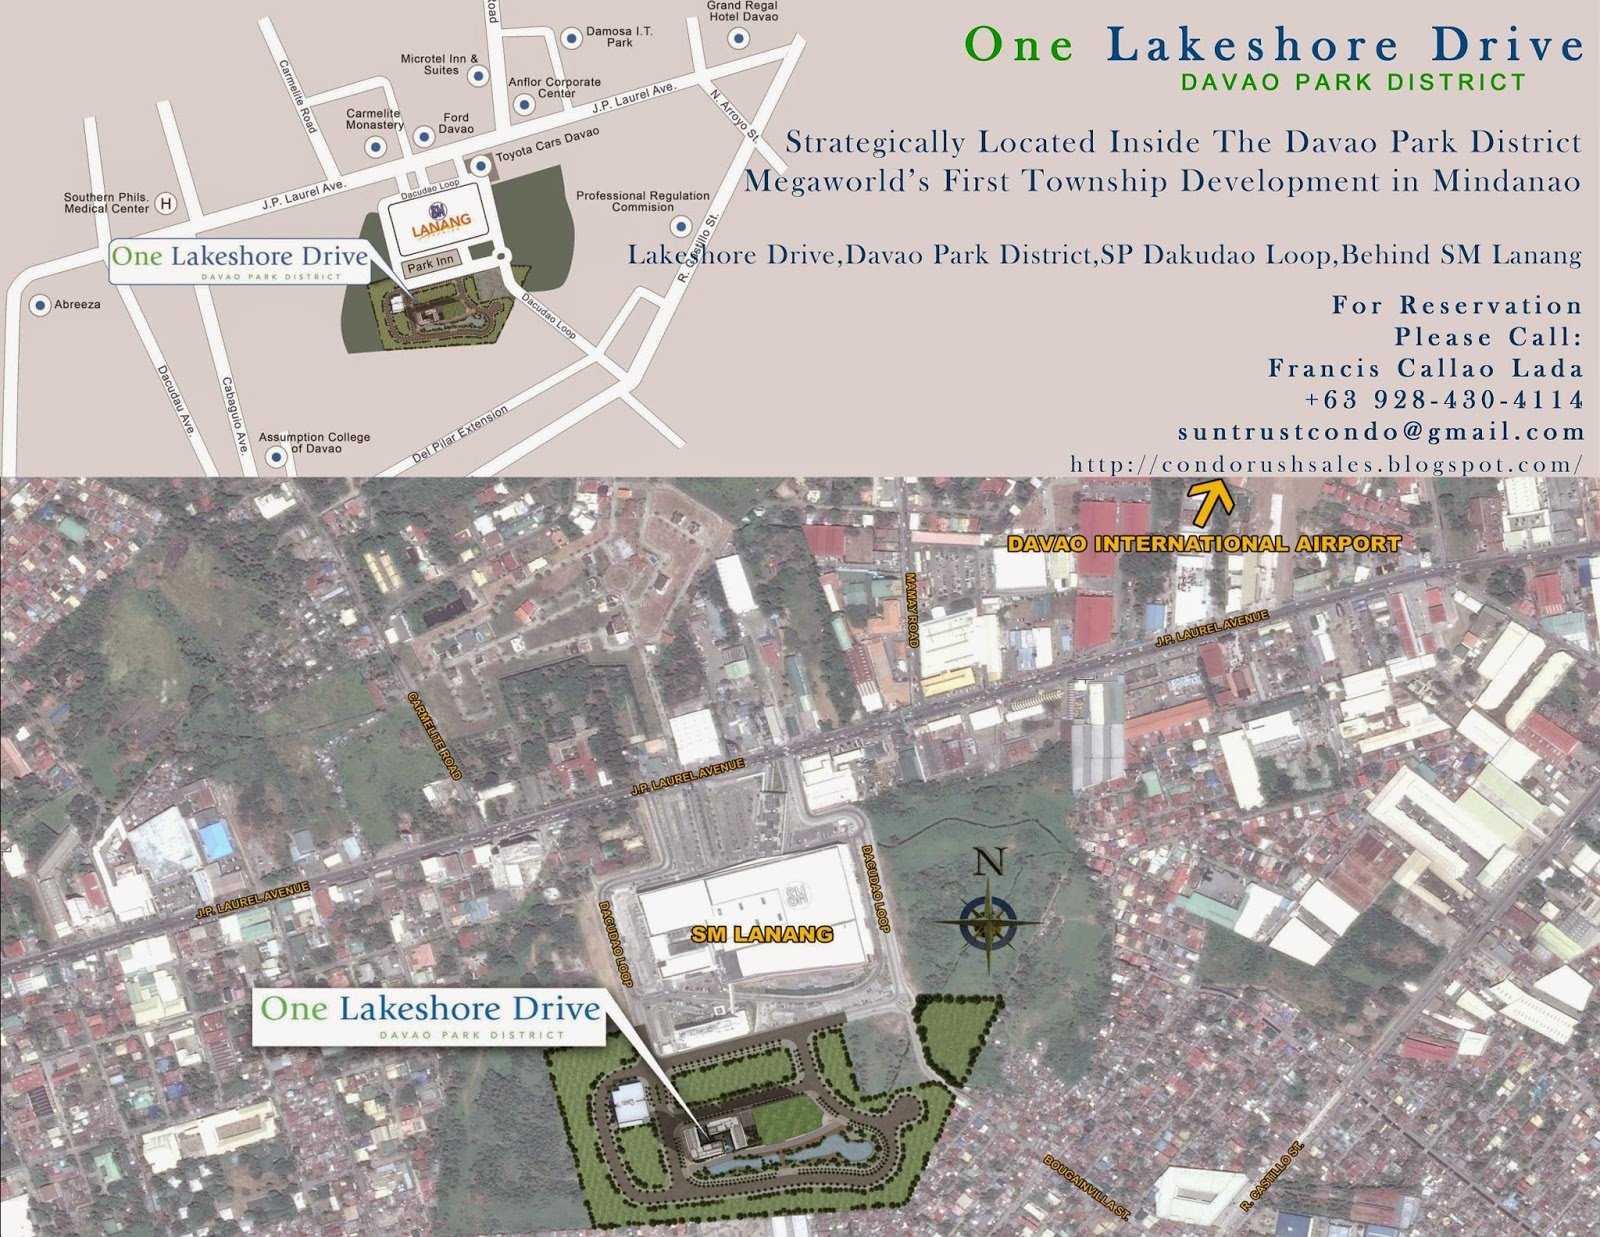 #One Lakeshore Drive Sitemap Location